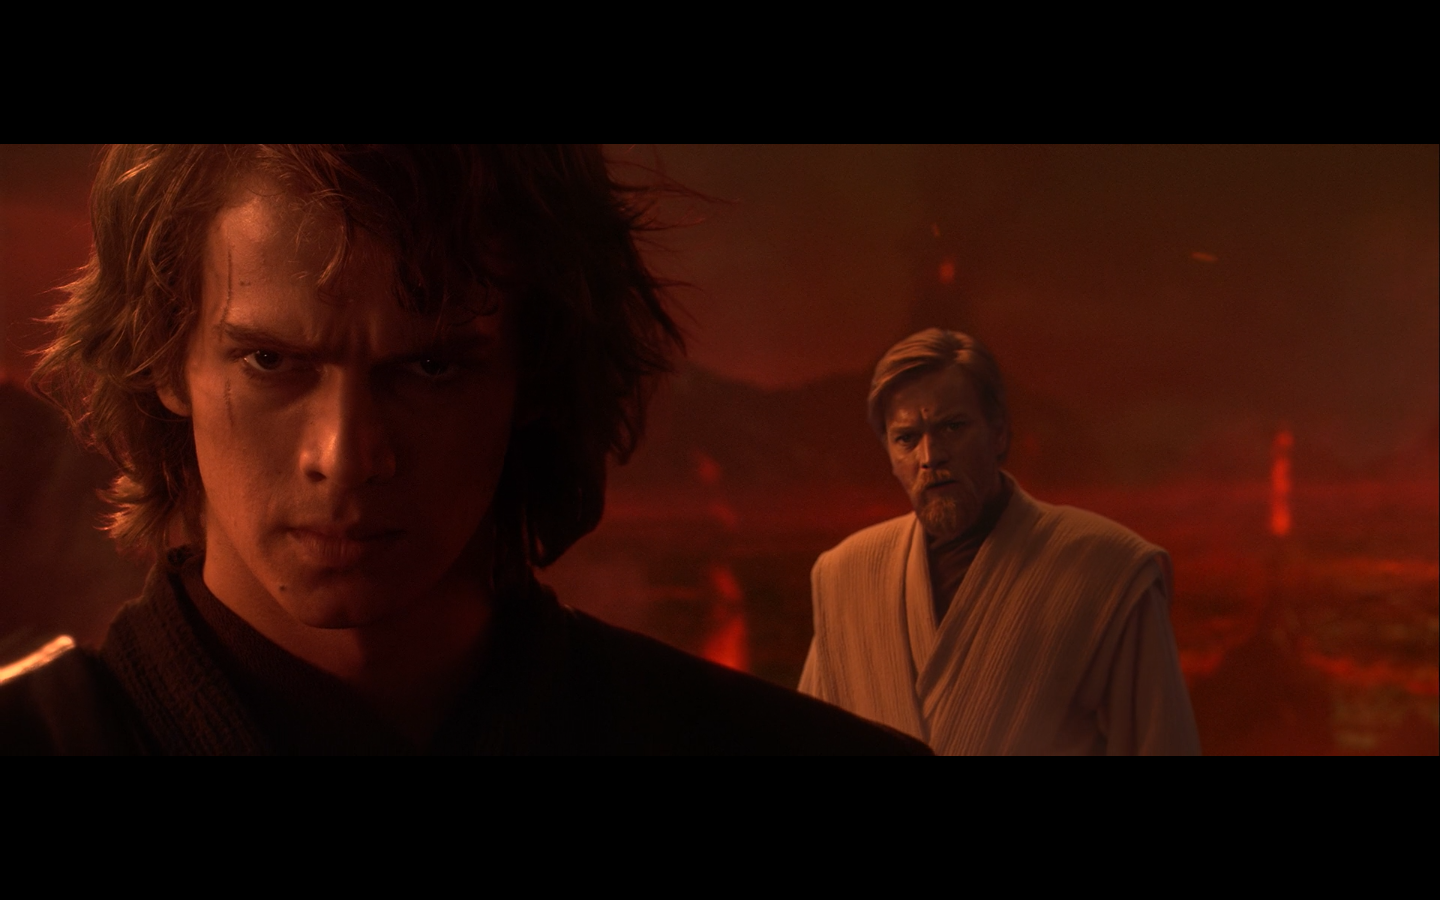 star-wars-revenge-of-the-sith-1294.png